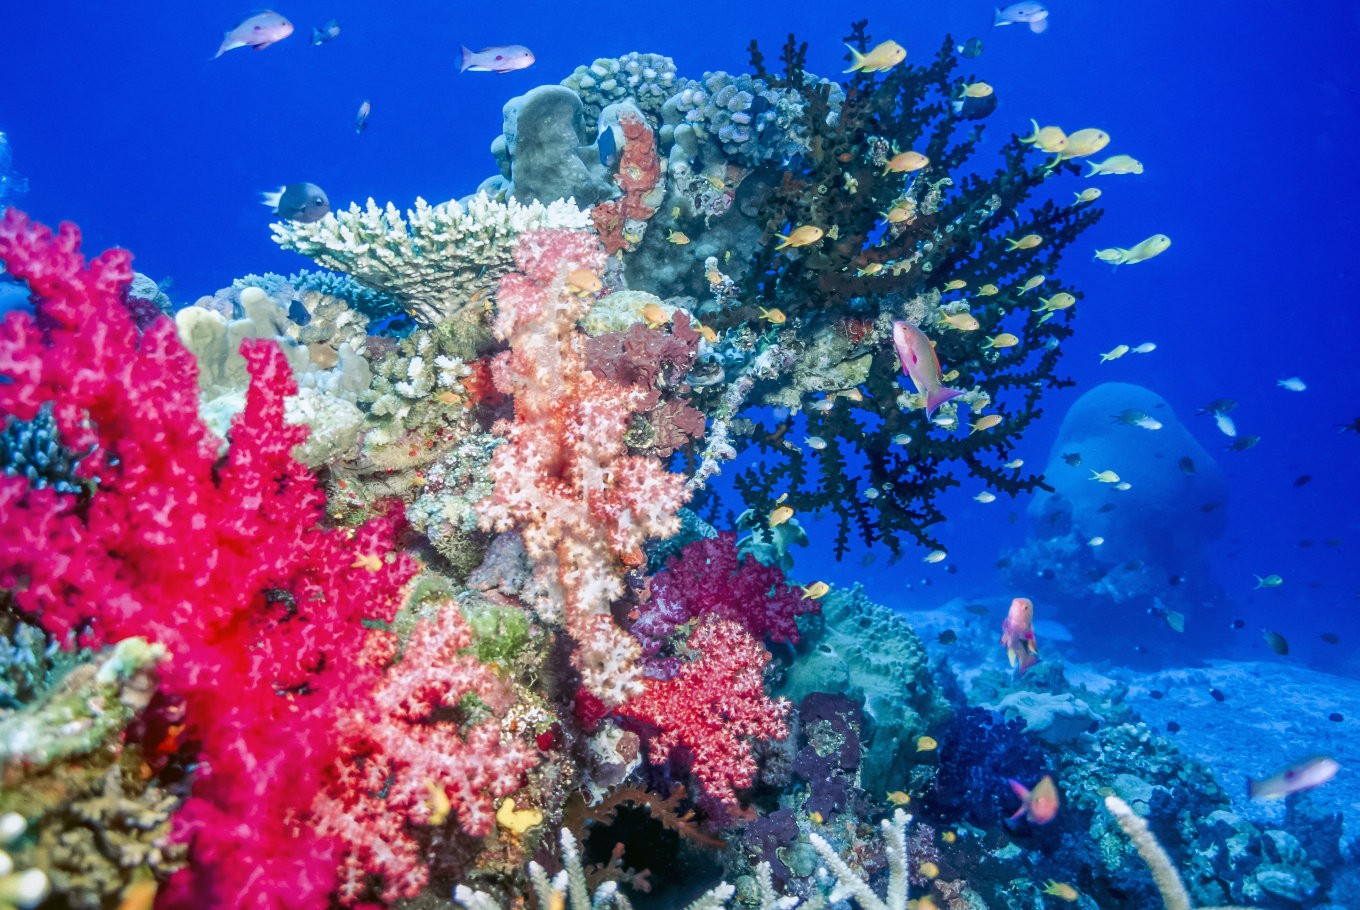 study stopping global warming only way to save coral reefs study stopping global warming only way to save coral reefs